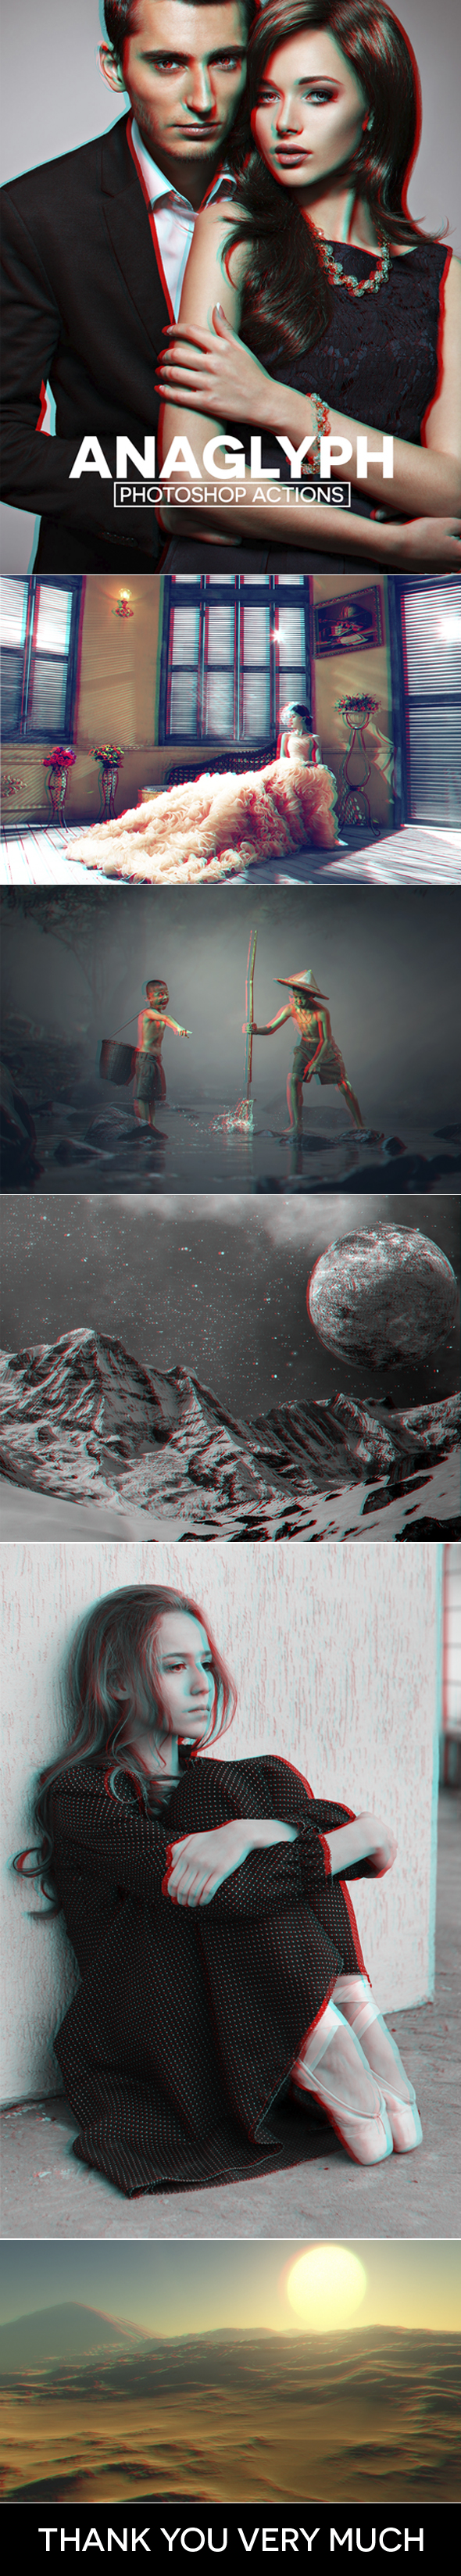 3D Red/Cyan Anaglyph Photoshop Actions - Photo Effects Actions